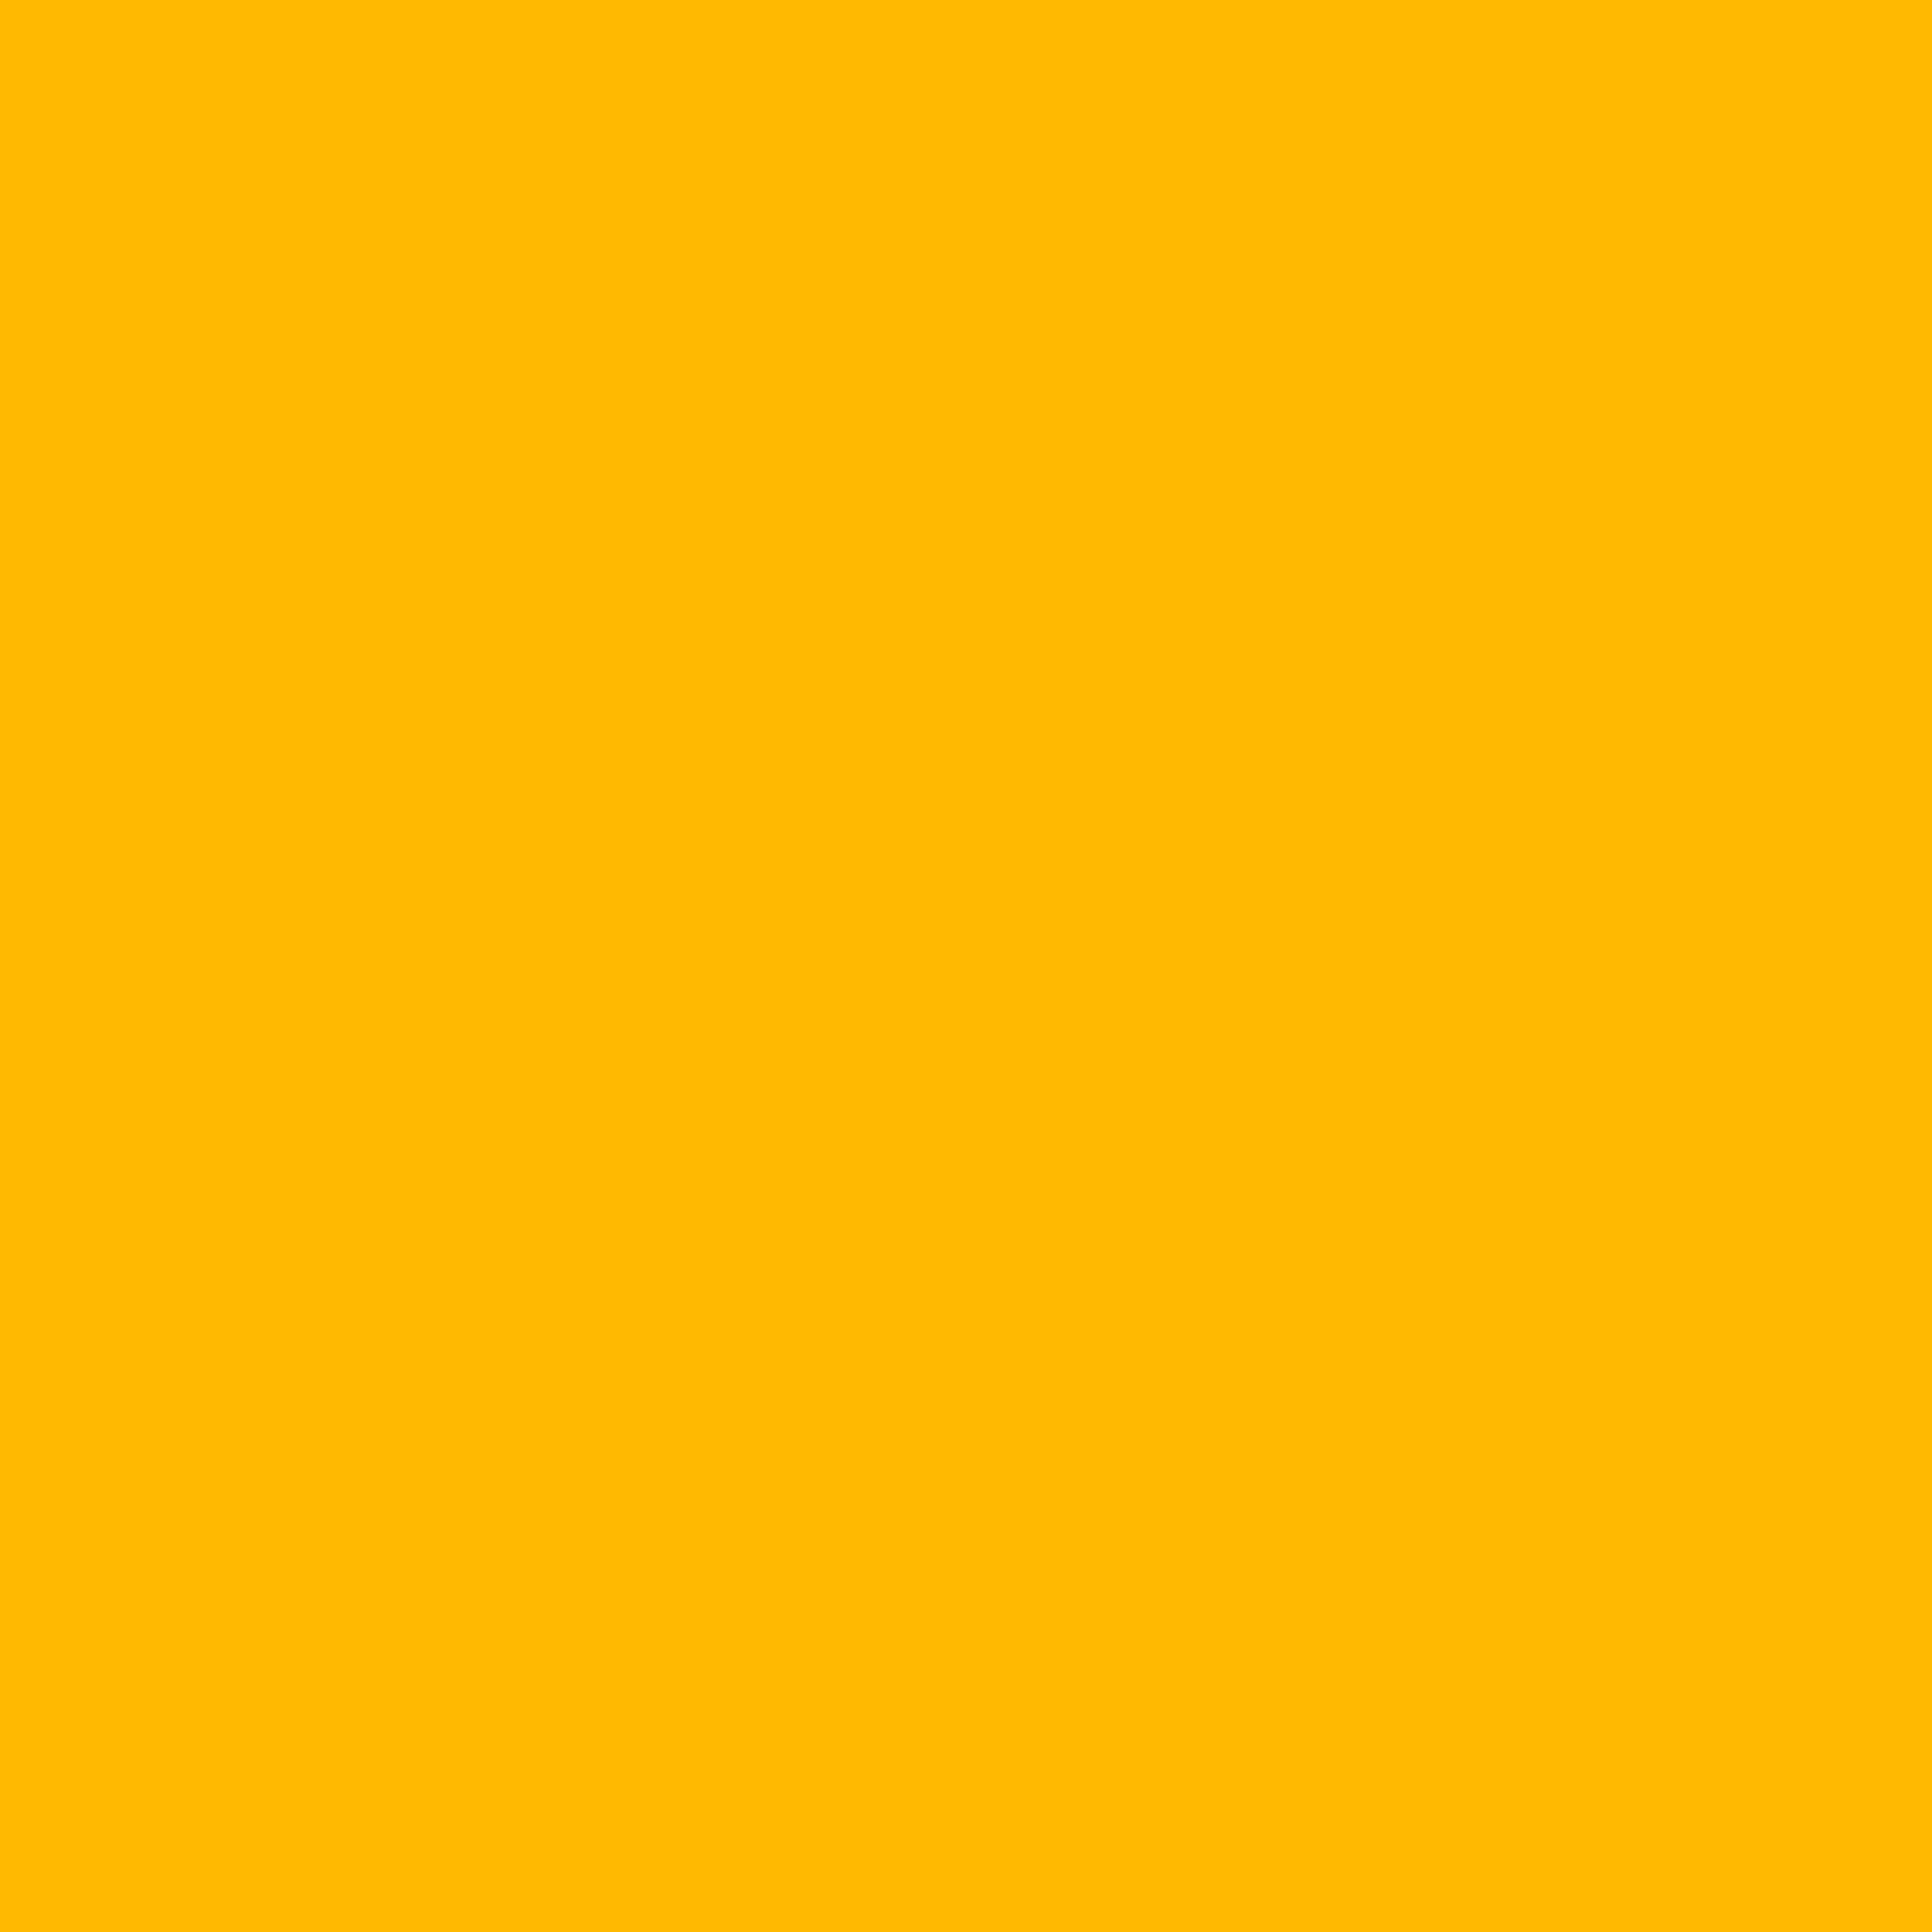 2732x2732 Selective Yellow Solid Color Background